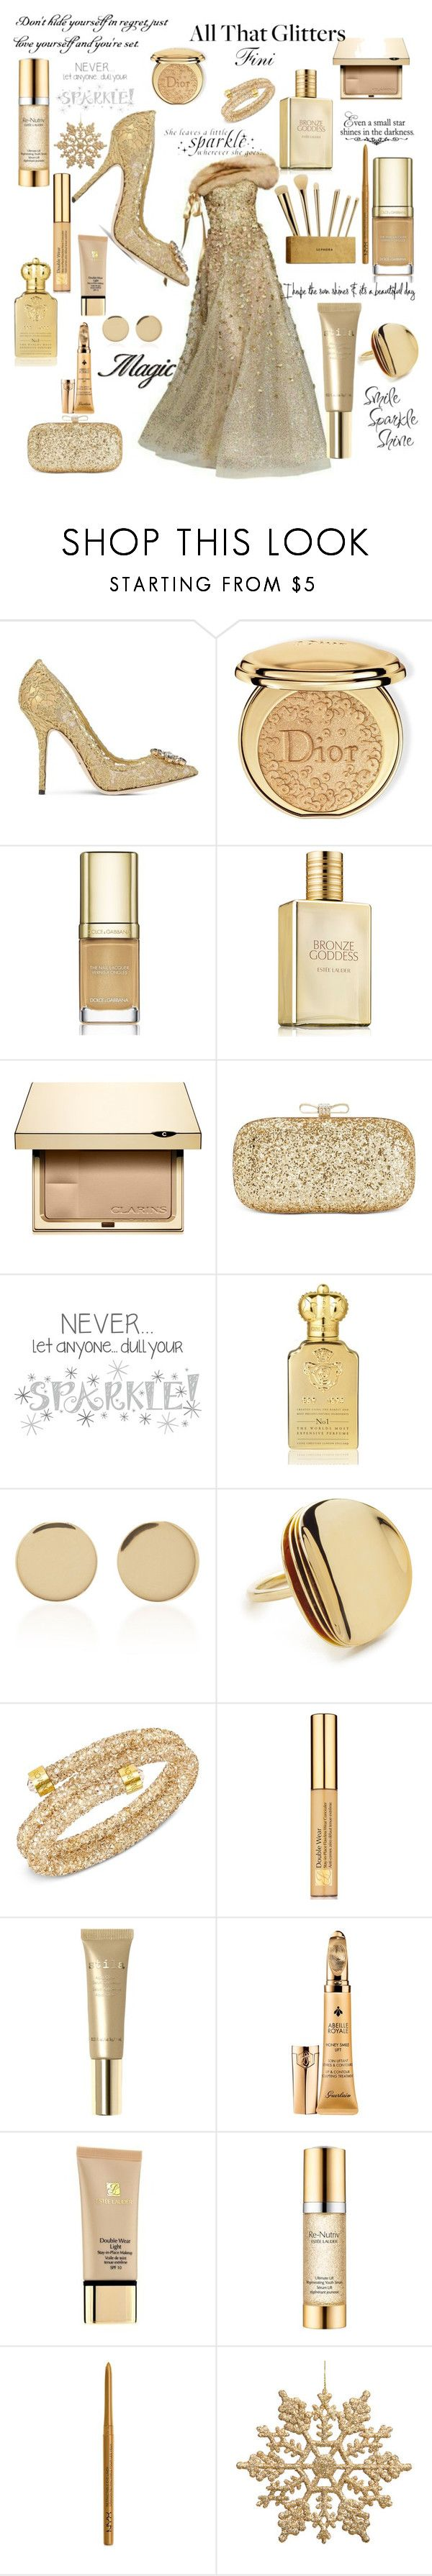 """All that glitters"" by fini-i ❤ liked on Polyvore featuring Dolce&Gabbana, Christian Dior, Estée Lauder, Clarins, Sephora Collection, INC International Concepts, WALL, Clive Christian, Magdalena Frackowiak and Elizabeth and James"